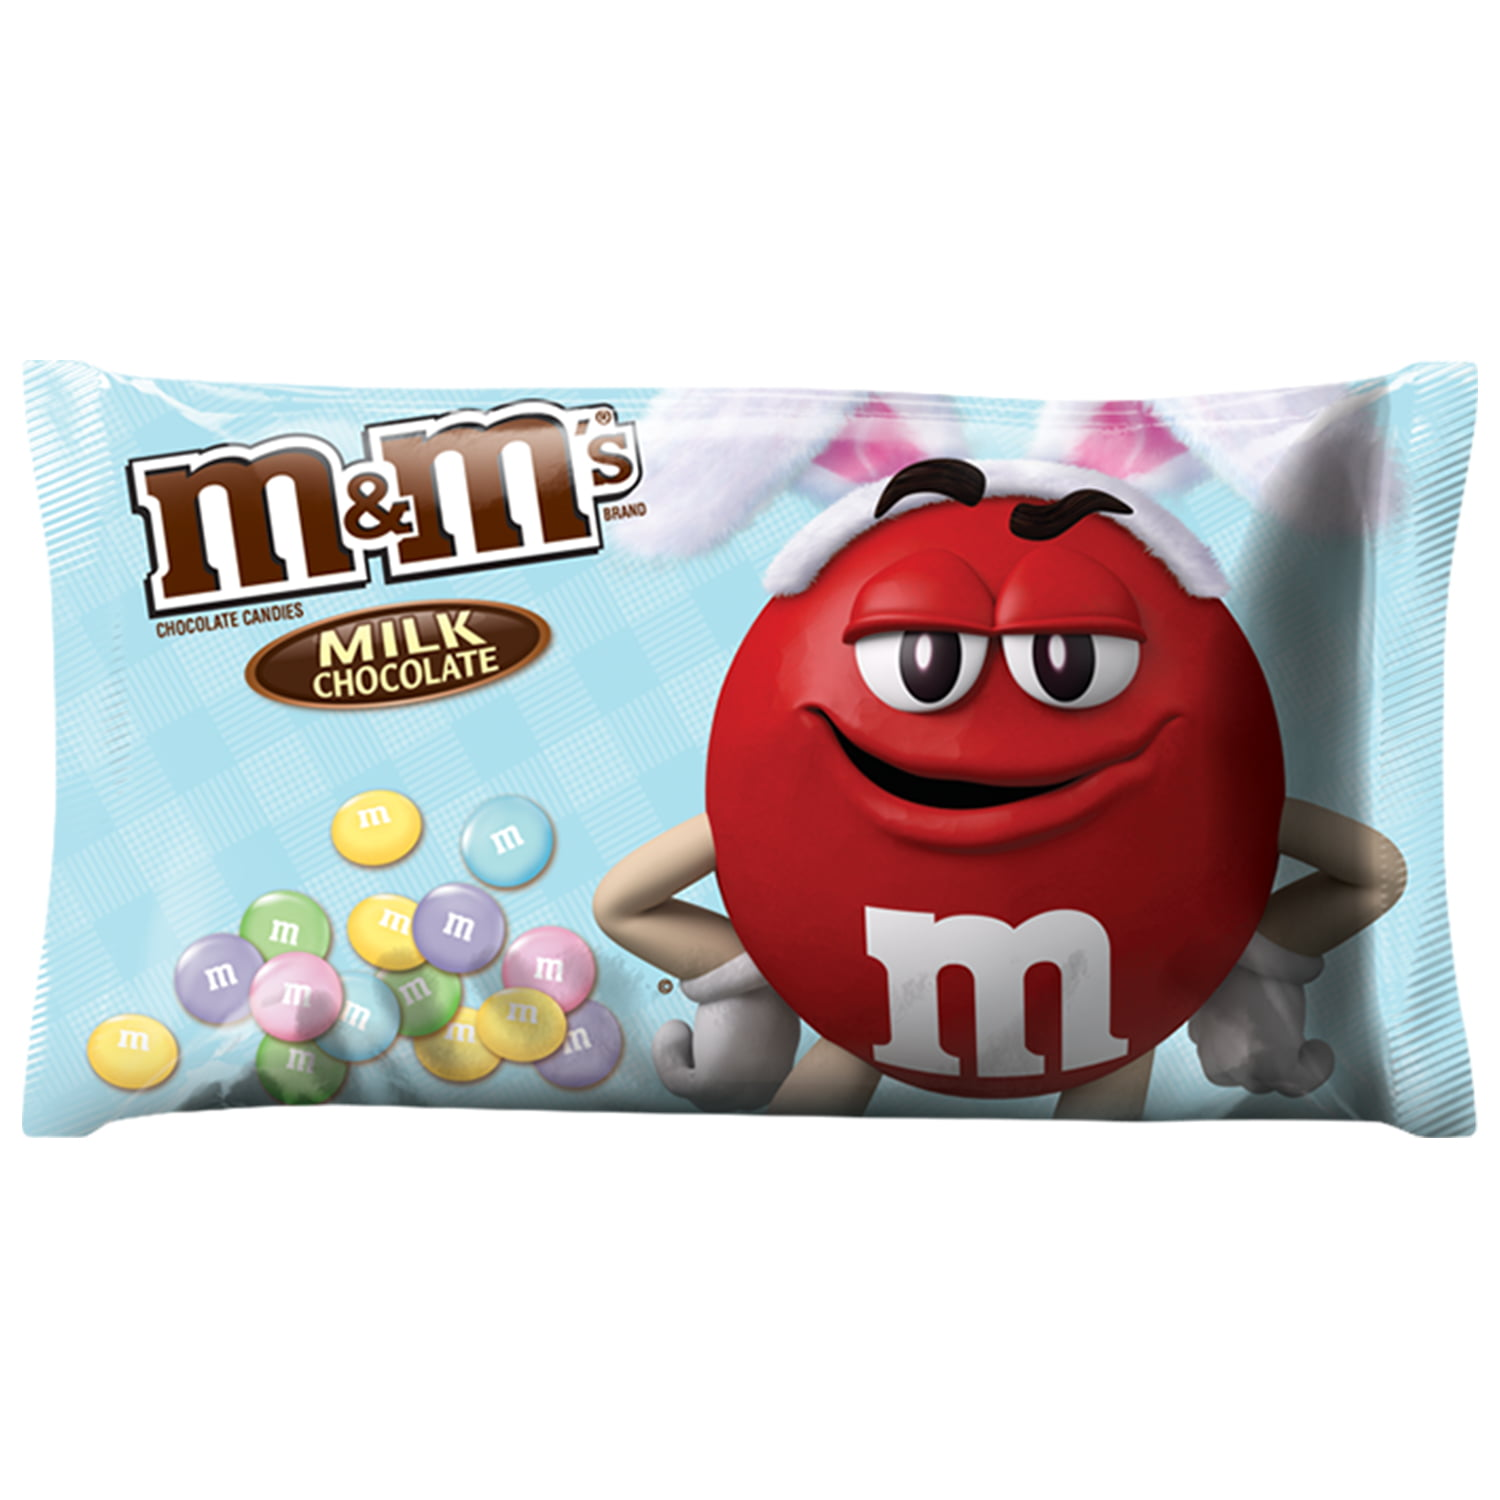 M&M'S Milk Chocolate Easter Candy, 11.4 Oz.